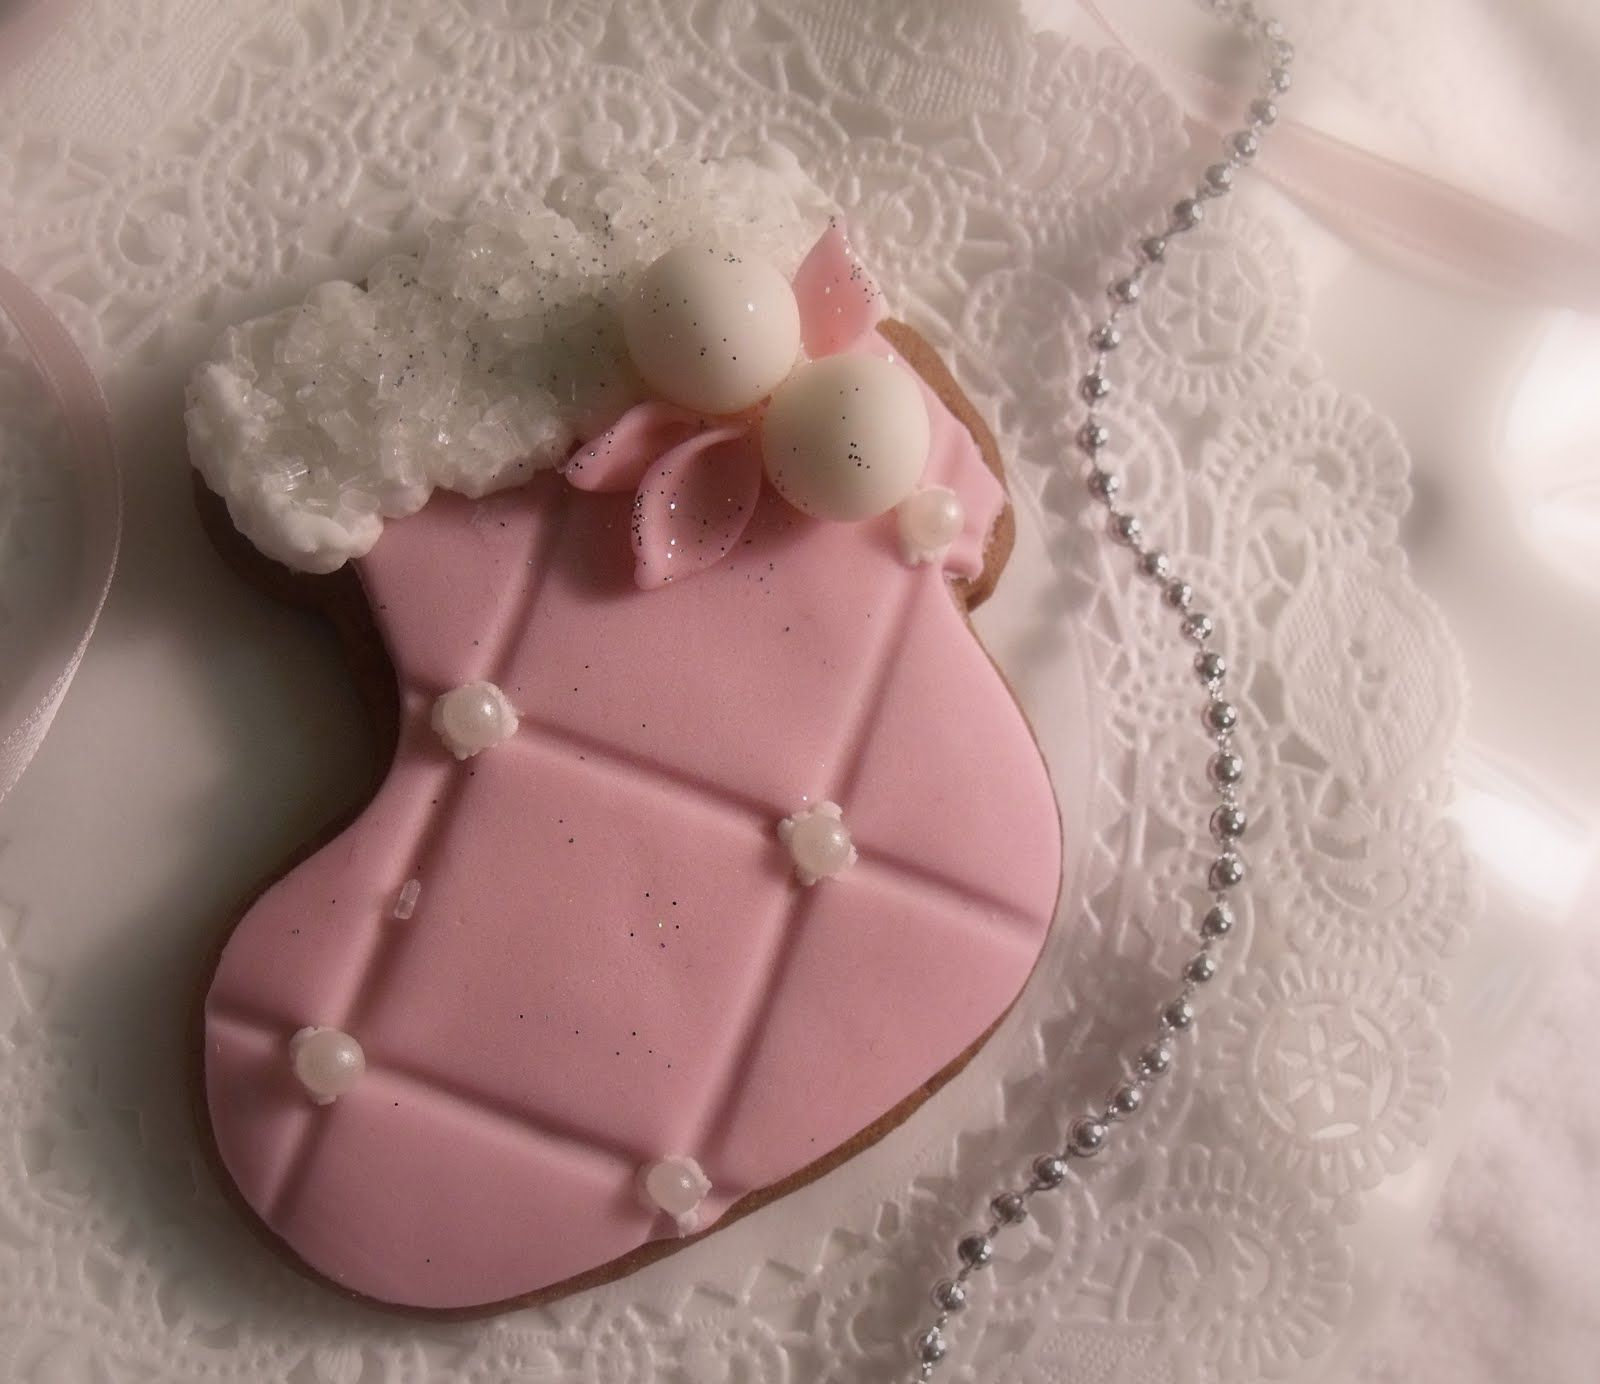 Pink Stocking Cookie food pink sweets cookies treat dessert decorate frosting bake christmas stocking